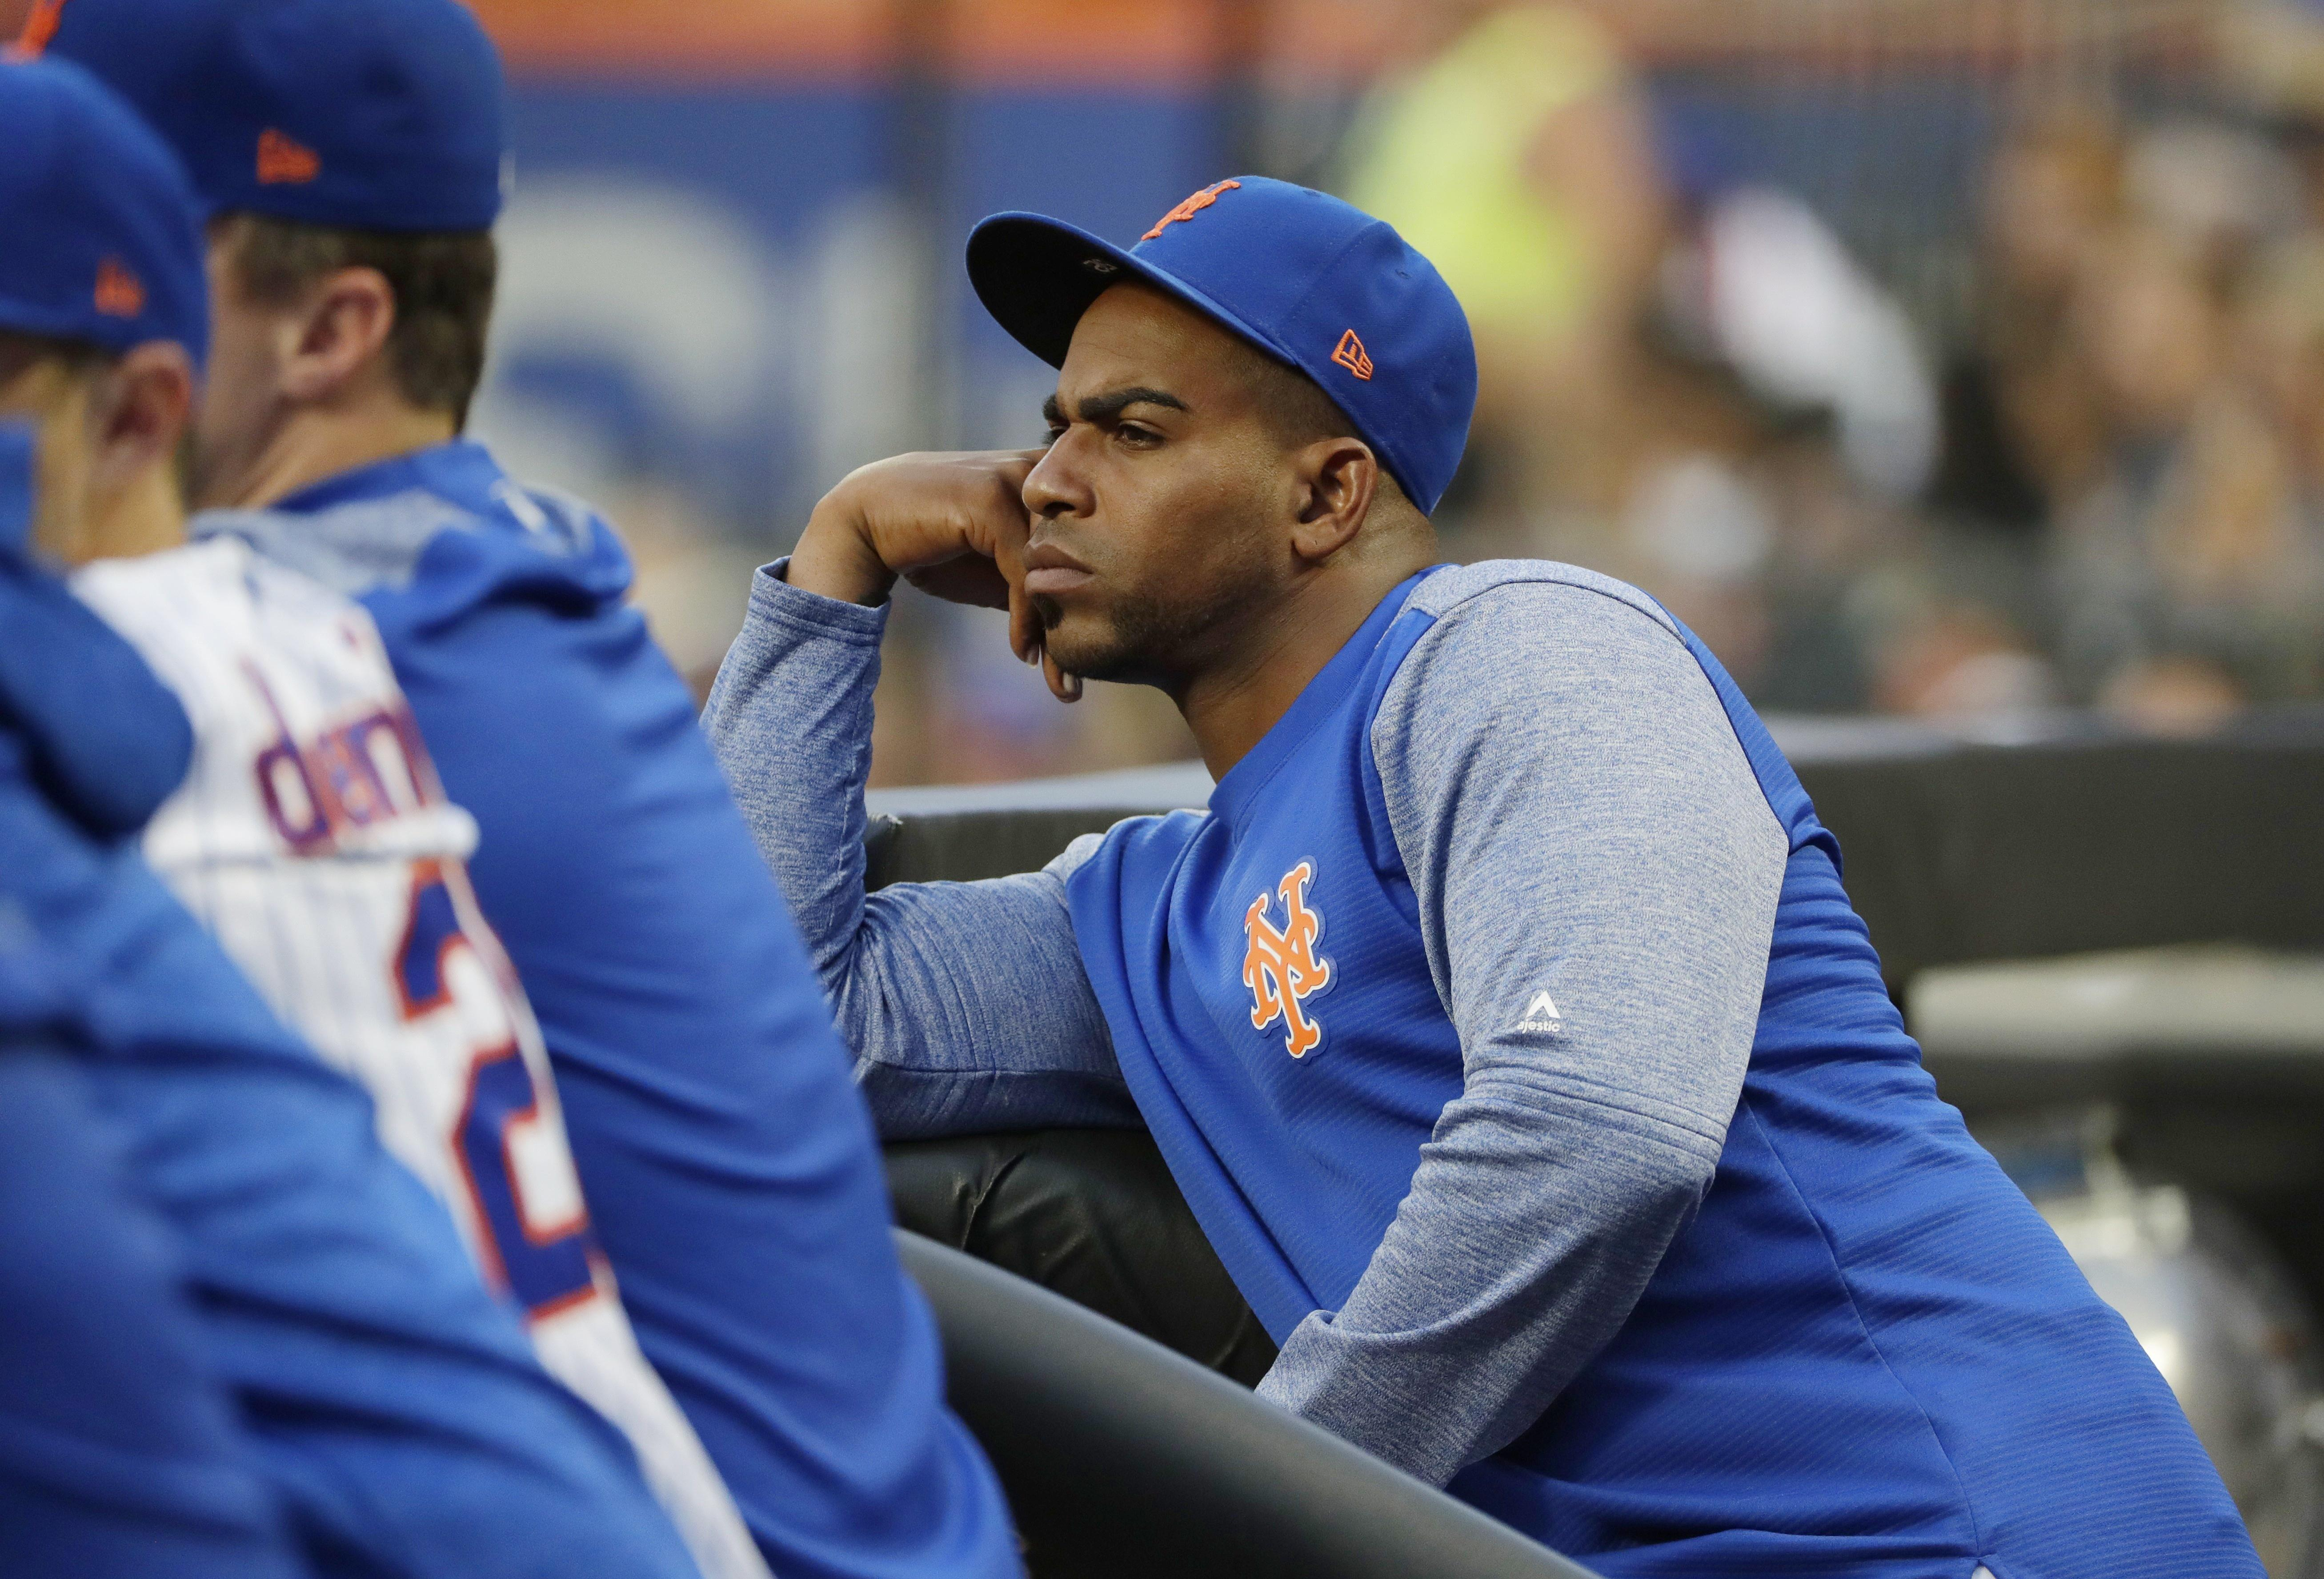 0ccf0967436 Mets slugger Yoenis Cespedes needs surgery on both of his heels and will  miss the rest